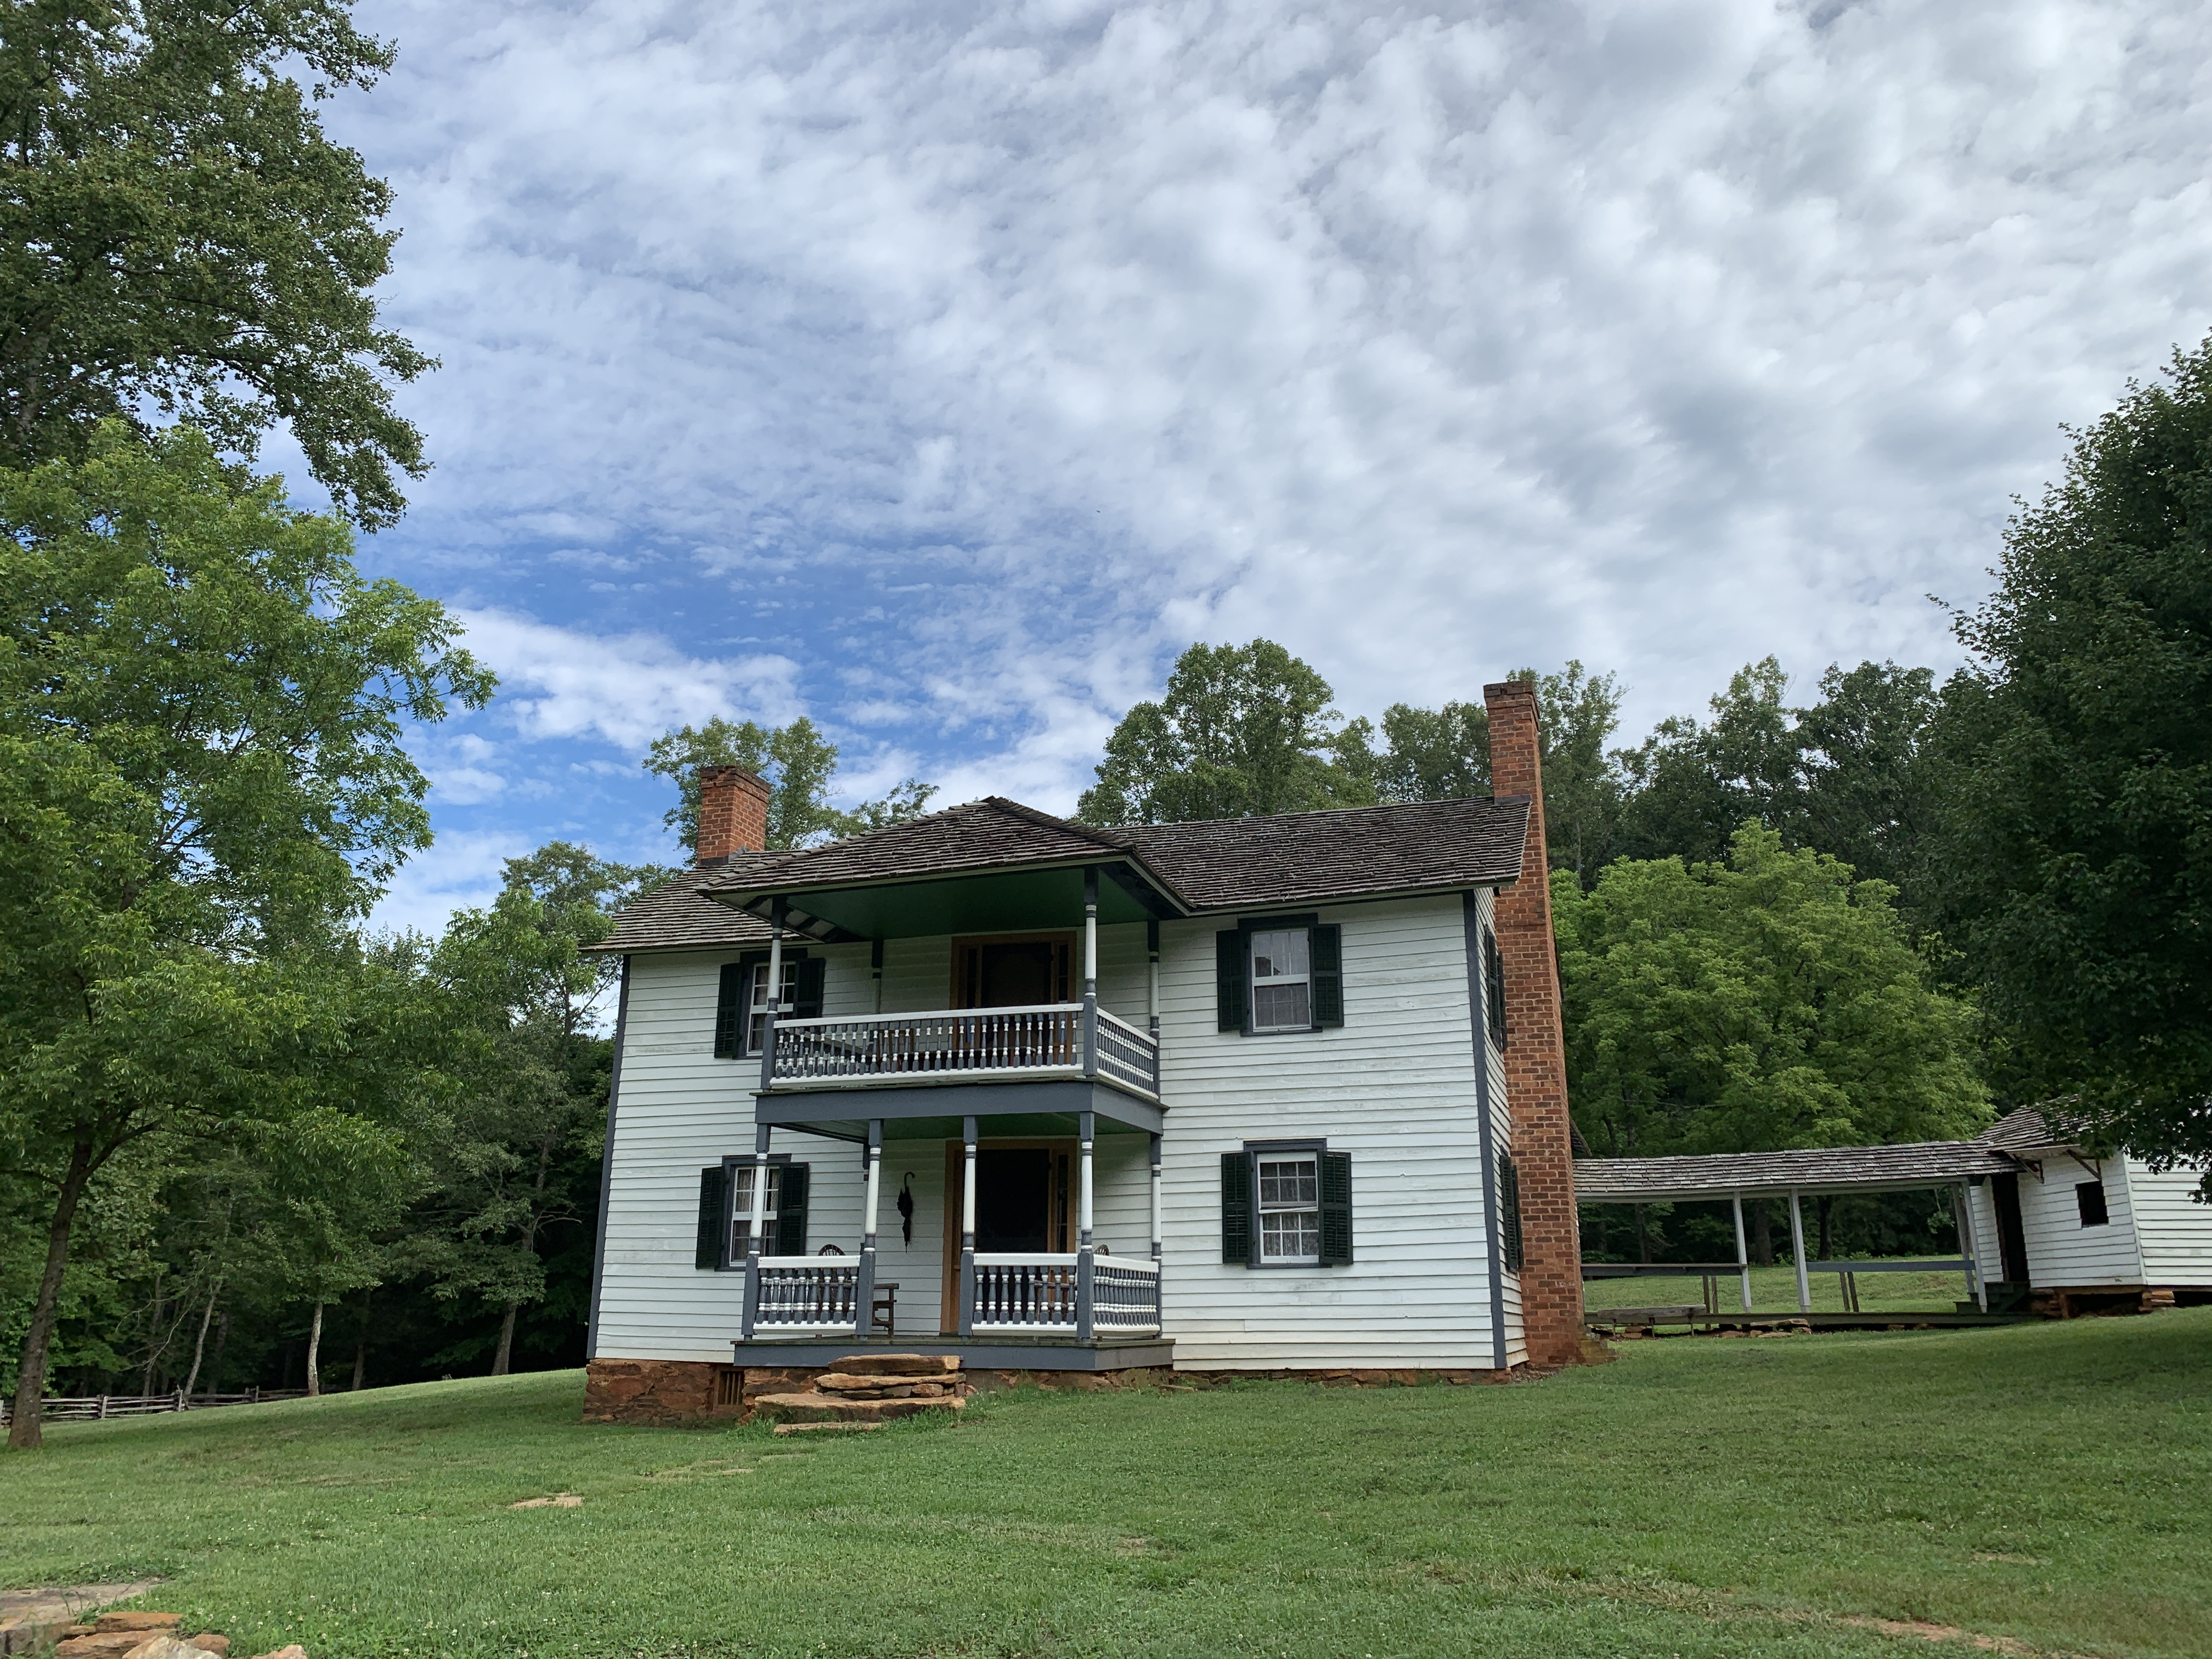 Exterior of the Hauser House at Horne Creek Farm